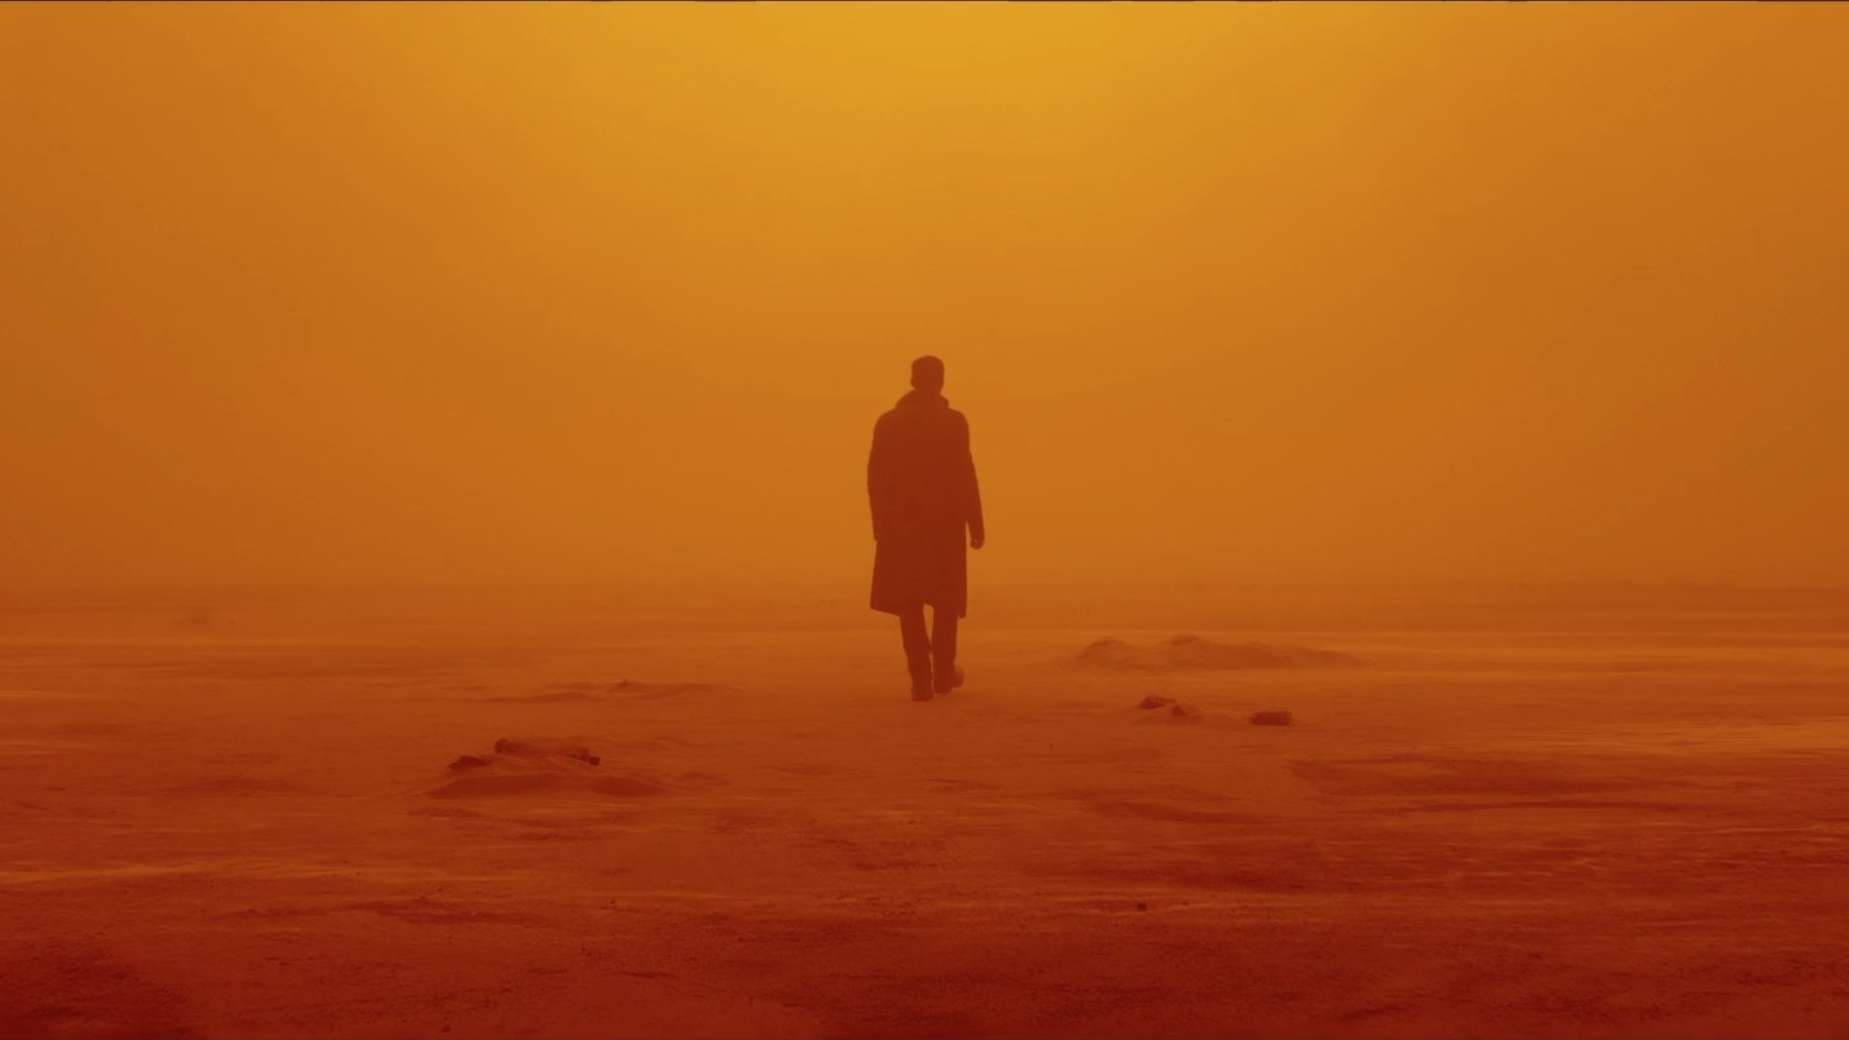 Blade Runner 2049 (2017) - Directed by: Denis VilleneuveWritten by: Hampton Fancher & Michael Green